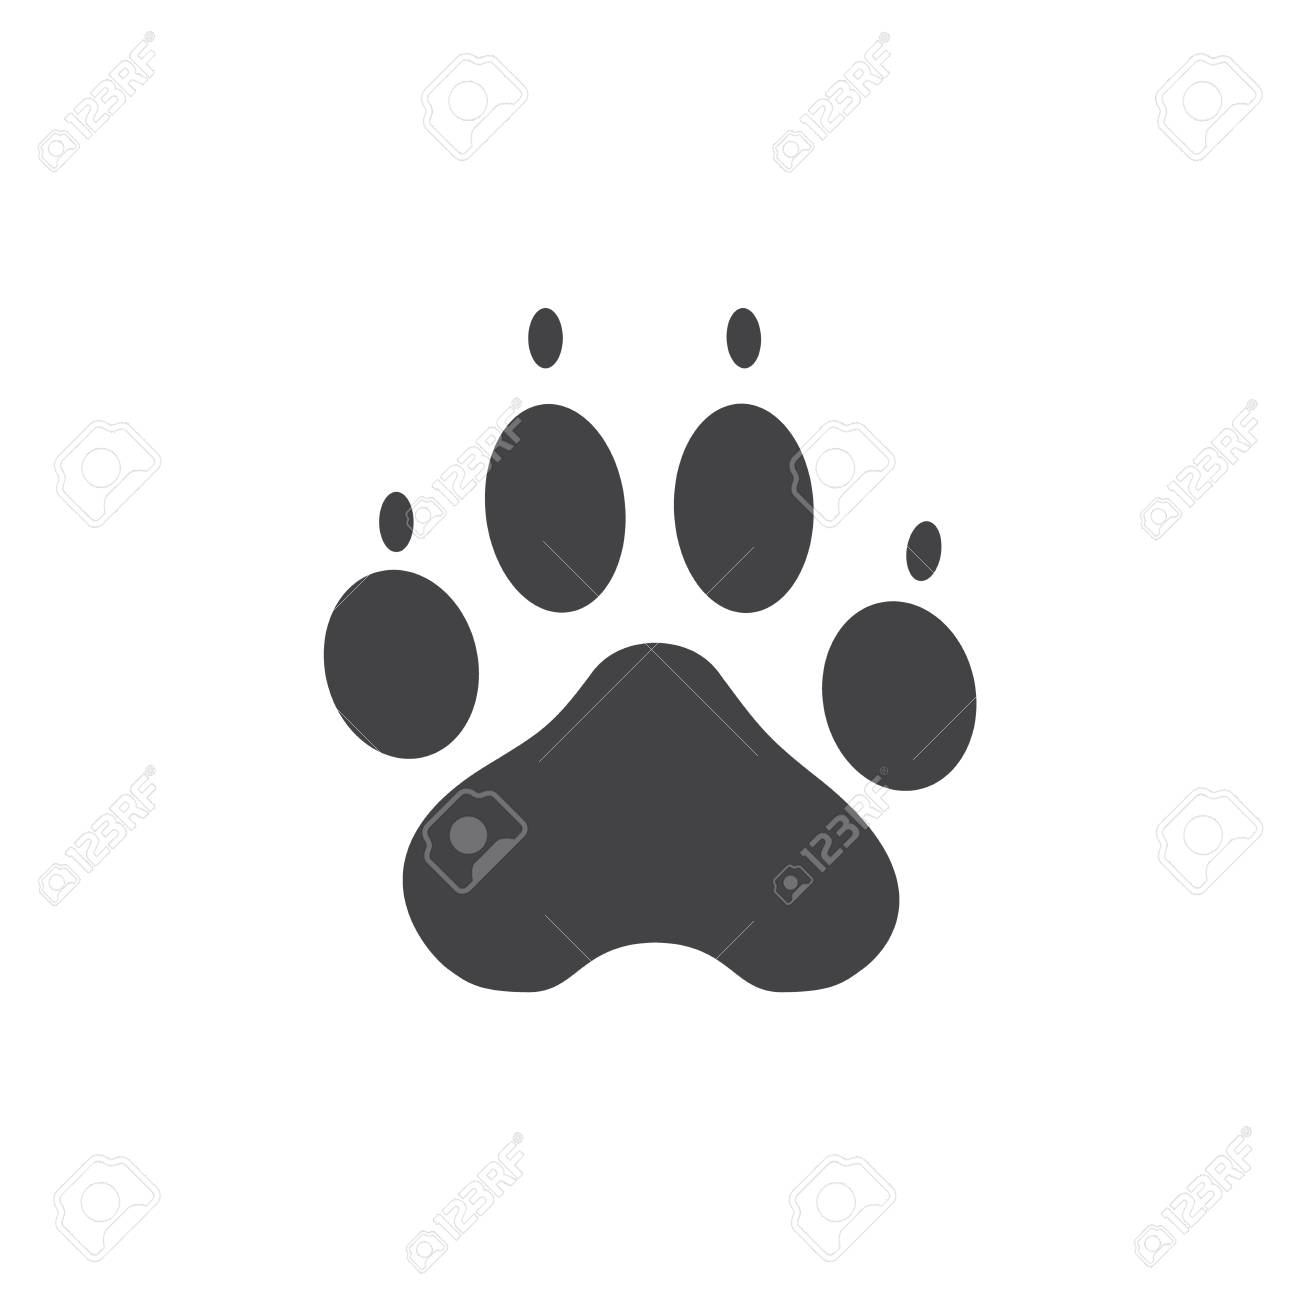 Raster Illustration Dog Paw Prints Logo Black On White Background